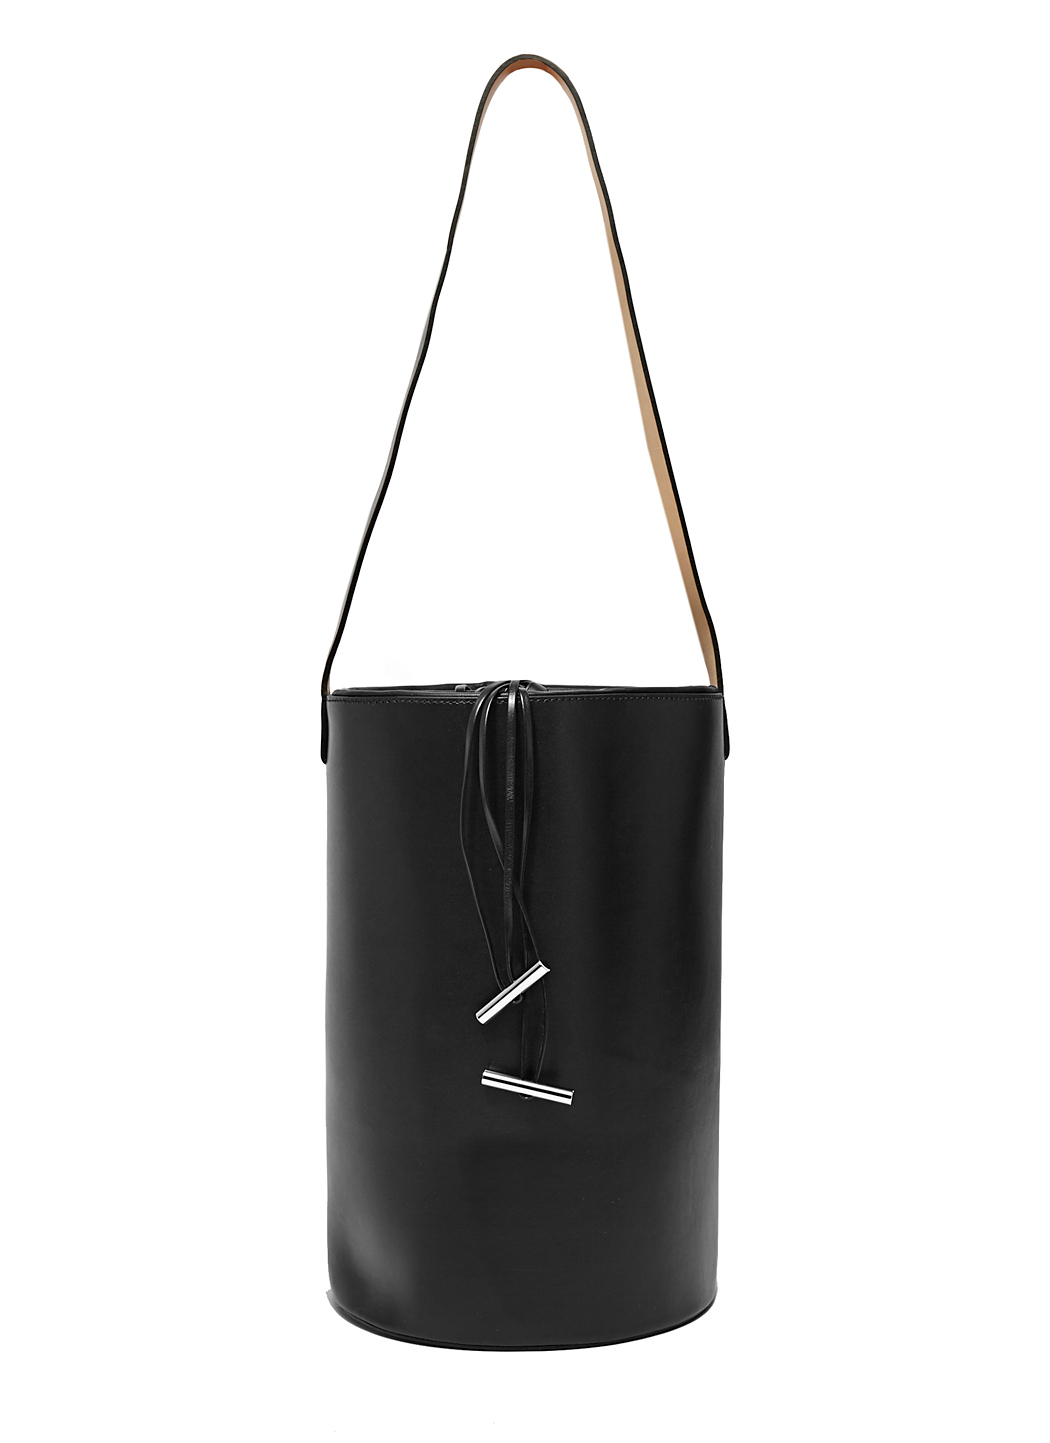 INEZ DRAWSTRING BAG IN EMBROIDERED NAPPA LAMBSKIN